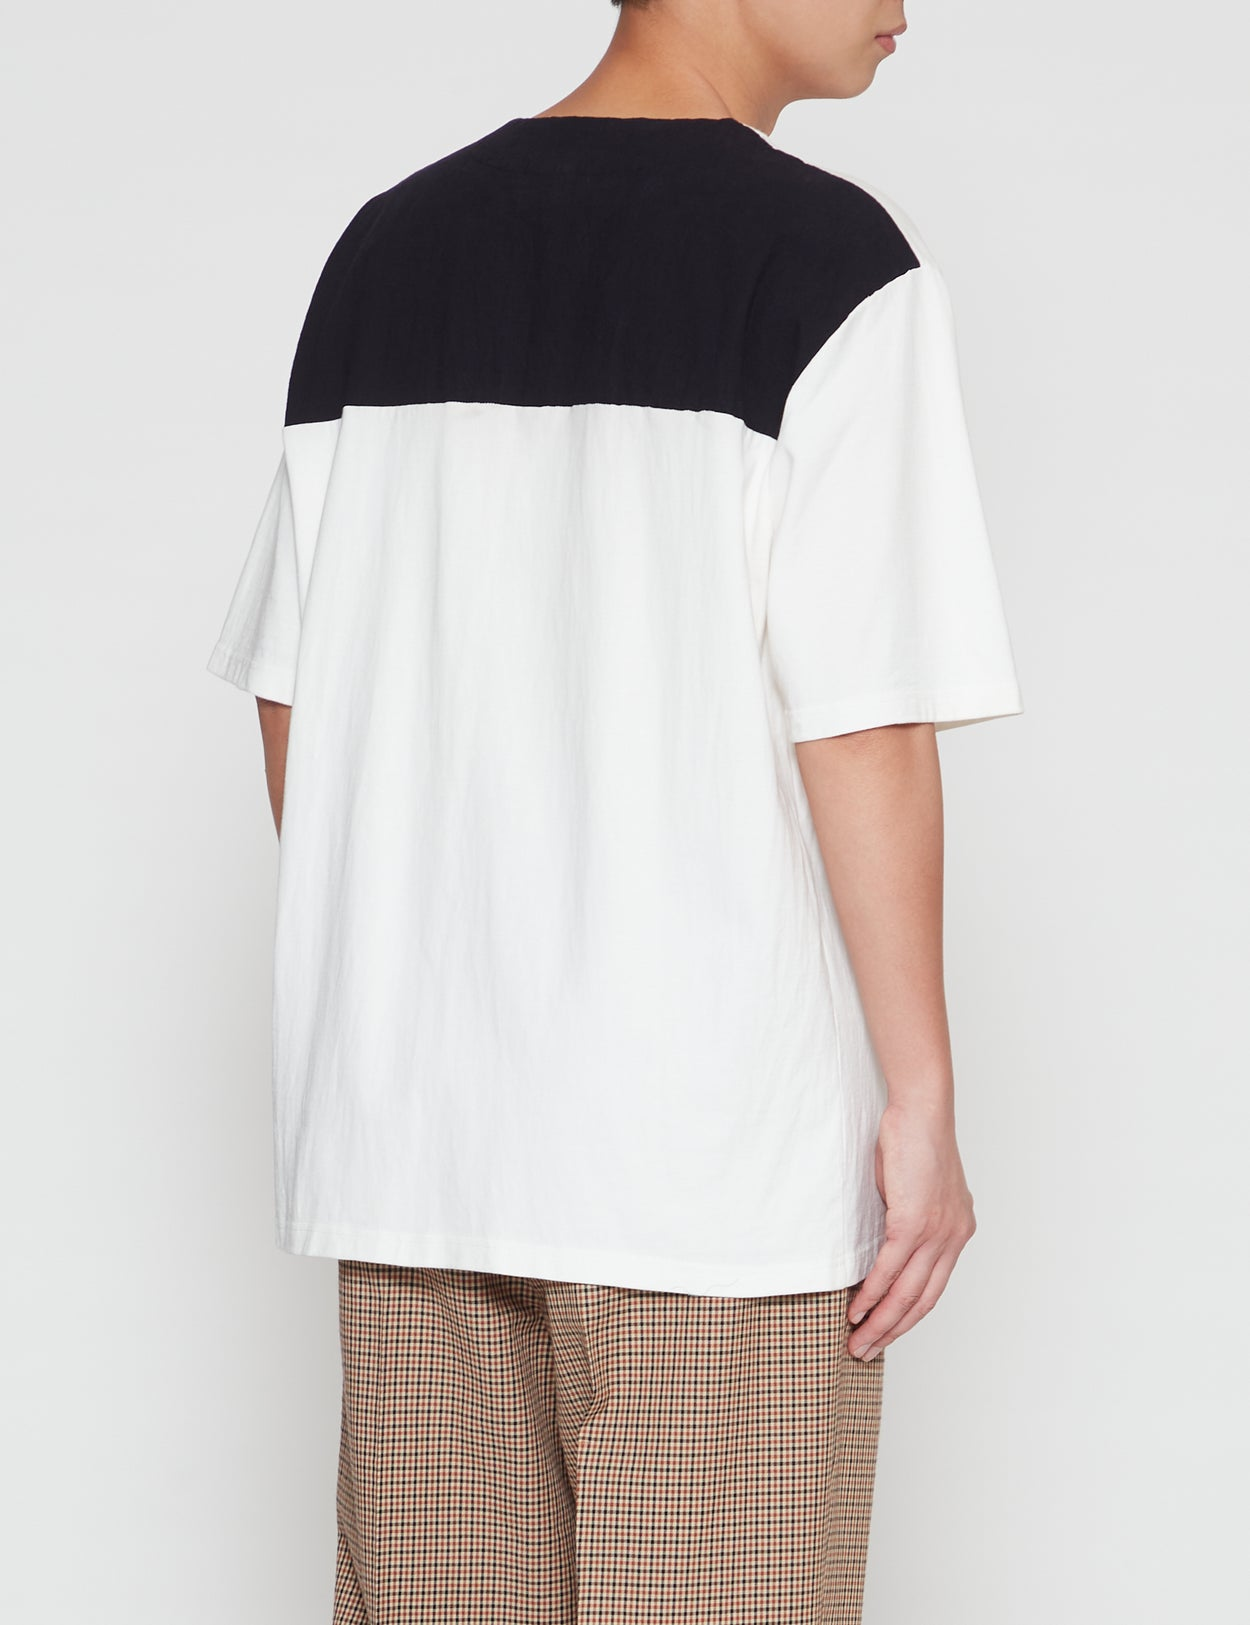 BLACK AND WHITE SHORT SLEEVE T-SHIRT